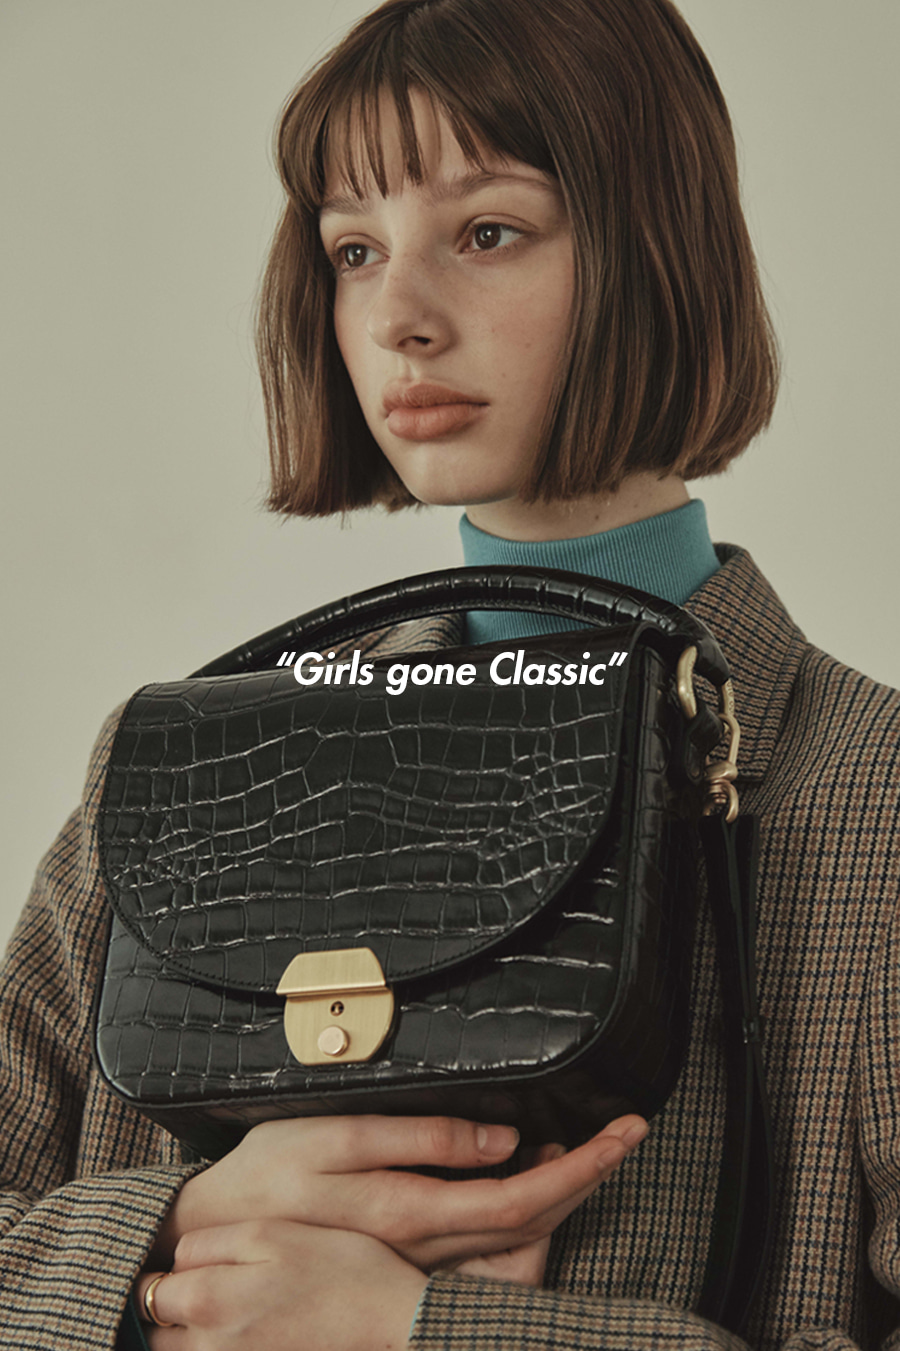 2019 FW collection - girls gone classic